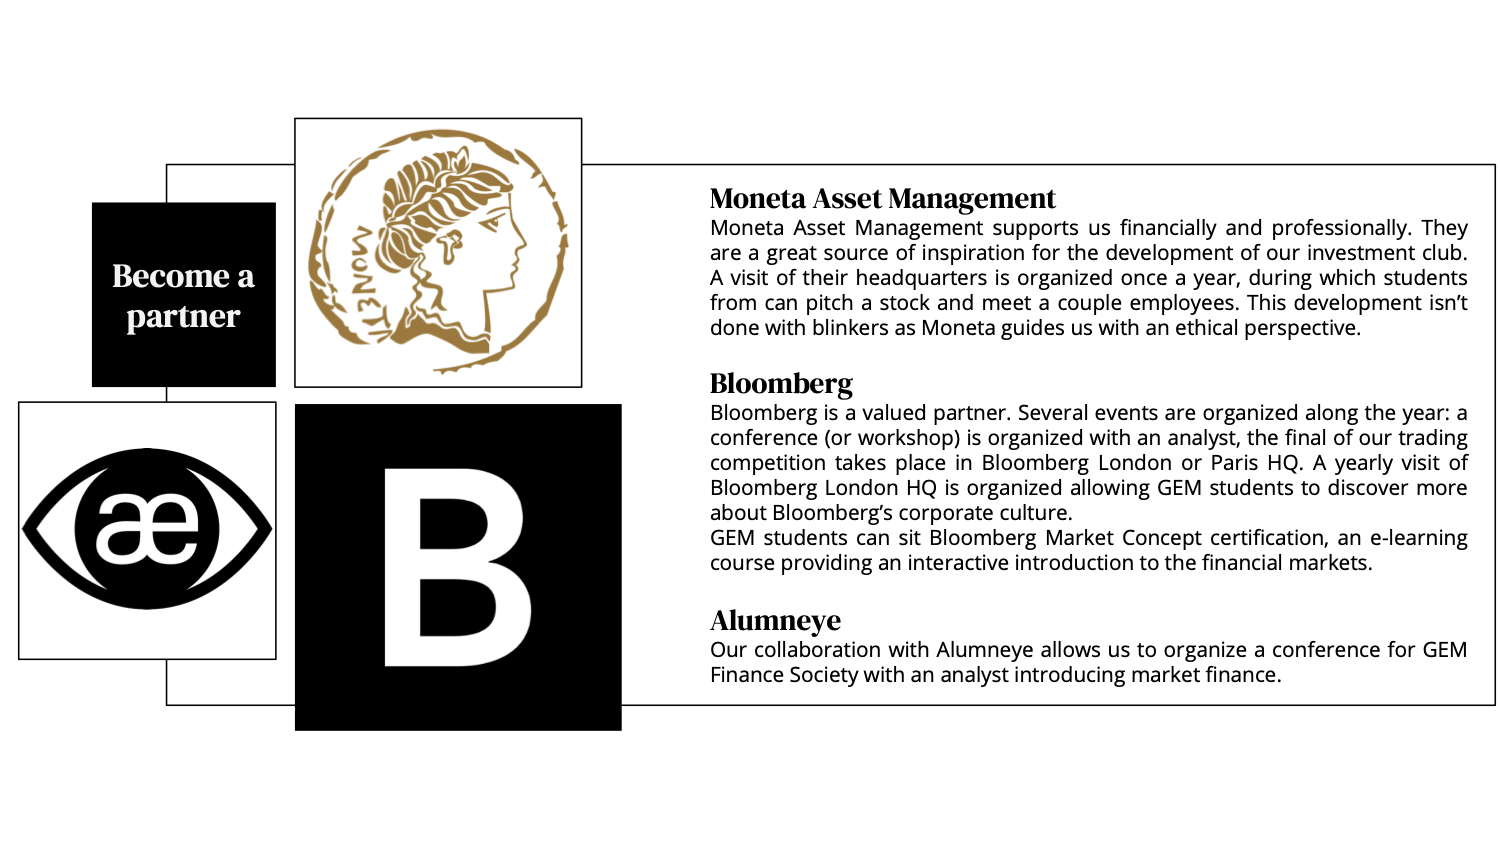 Bloomberg is a valued partner. Several events are organized along the year: a conference (or workshop) is organized with an analyst, the final of our trading competition takes place in Bloomberg London or Paris HQ. Each year a visit of Bloomberg London HQ is organized allowing GEM students to discover more about Bloomberg's corporate culture. GEM students can pass Bloomberg Market Concept, an e-learning course providing an interactive introduction to the financial markets. Moneta Asset Management supports us financially and professionally. Moneta is a great source of inspiration for the development of our investment club yearly visits and presentations of their headquarters are organized. This development isn't done with blinkers as Moneta guides us with an ethical perspective. Our collaboration with Alumneye allows us to organize for GEM Finance Society a conference with an analyst presenting market finance.